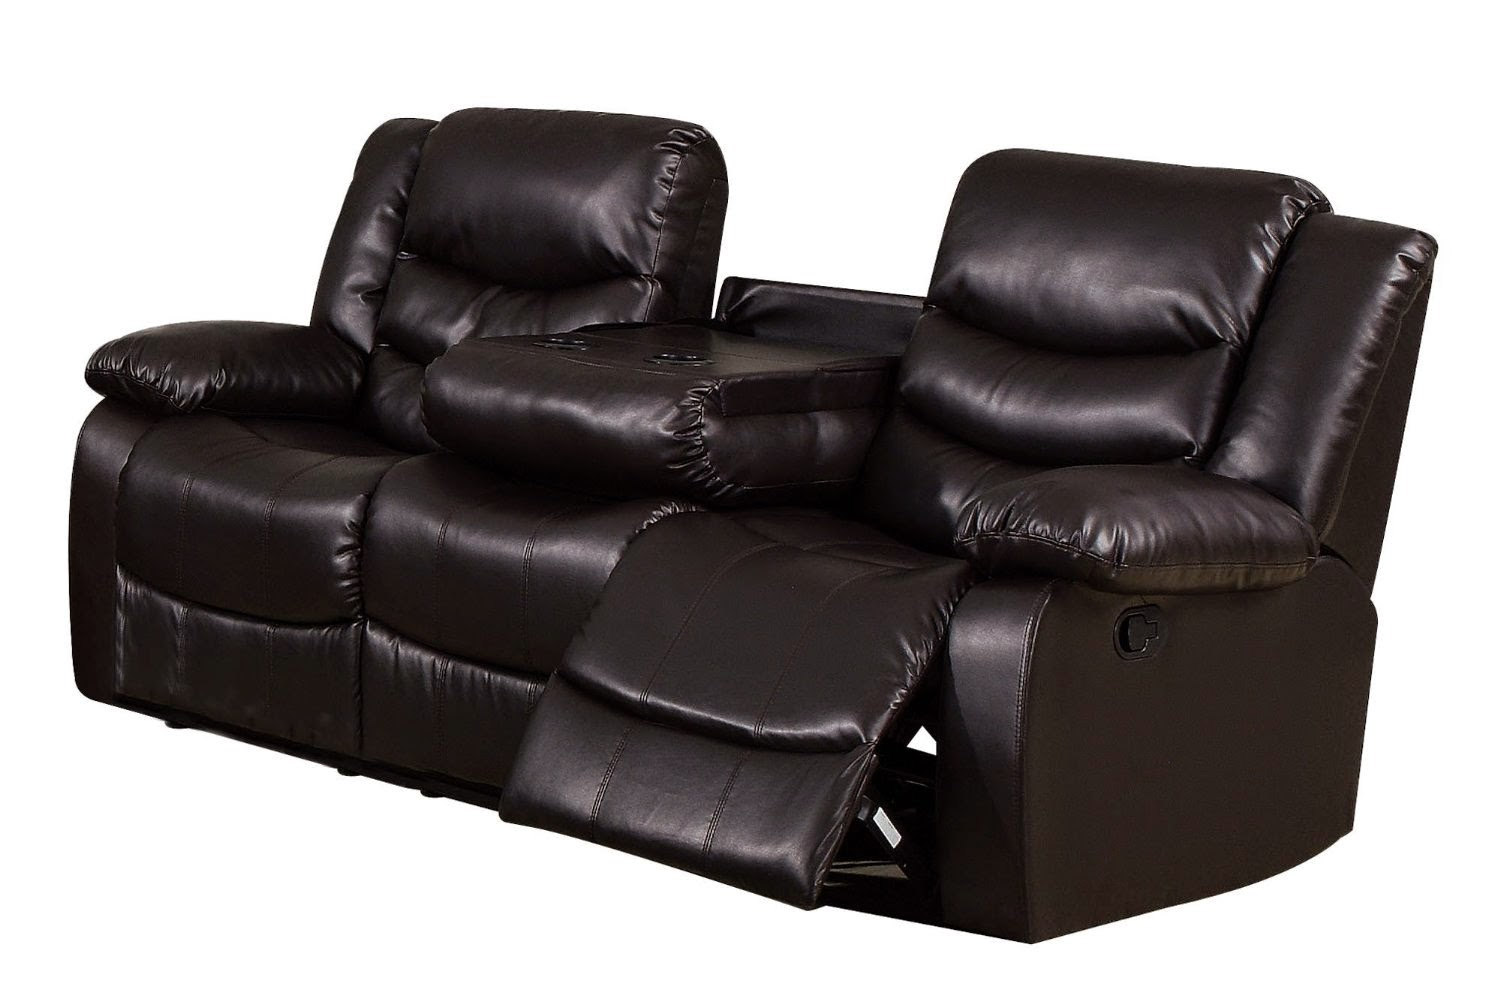 Reclining Sofas For Sale Dual Reclining Sofa With Drop Down Table